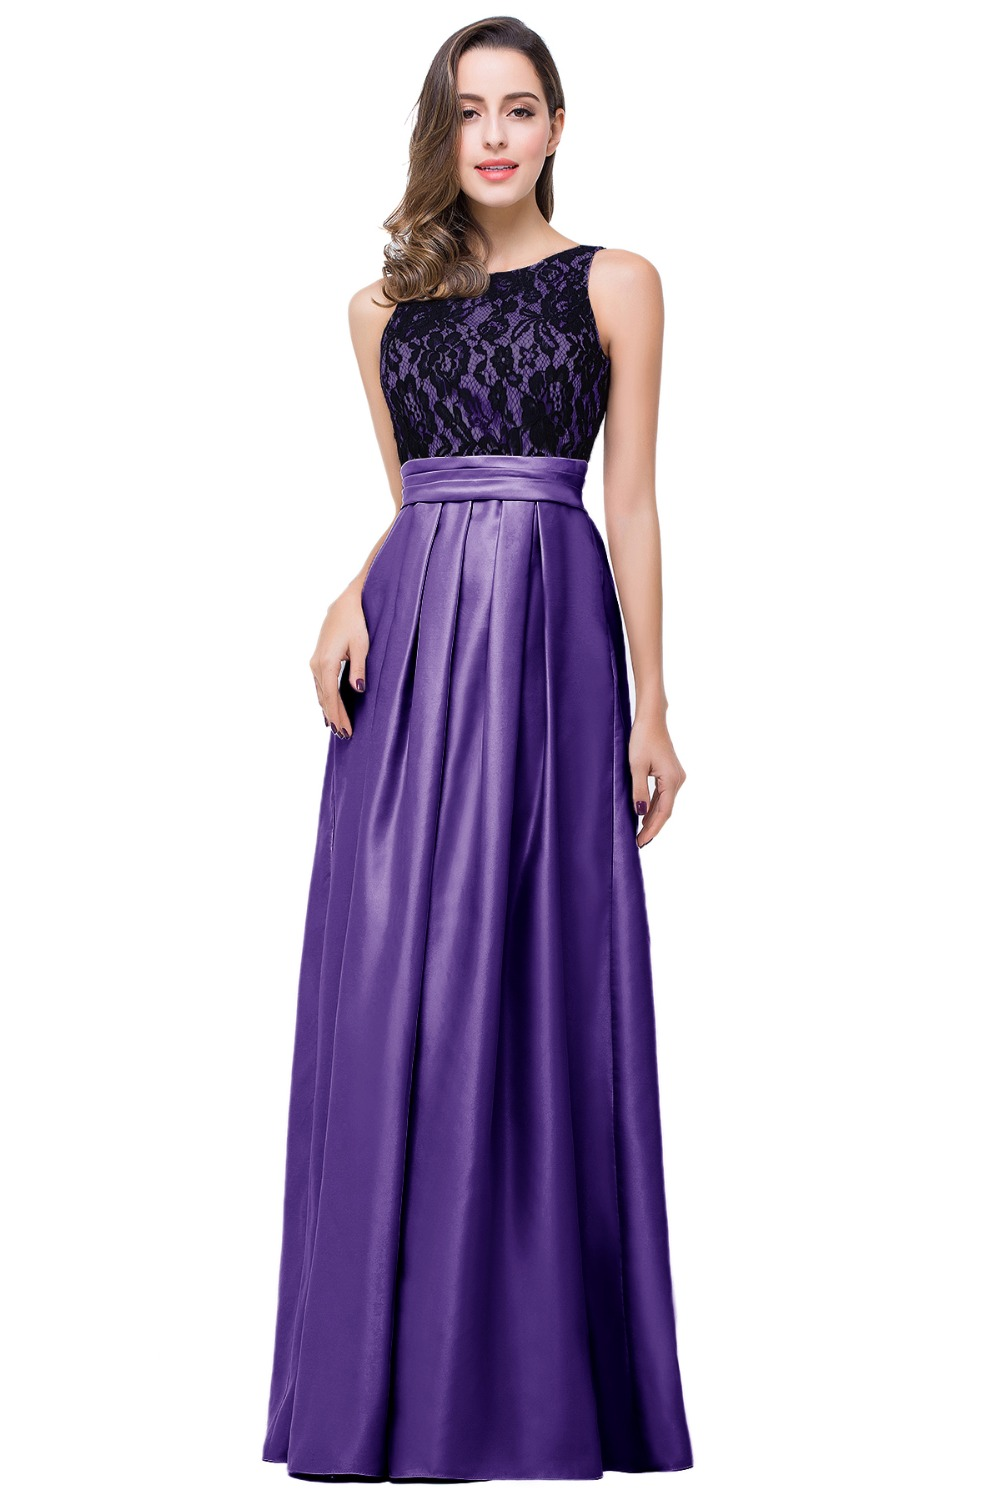 under 50 real picture robe de soiree lace long purple bridesmaid dress 2016 formal wedding. Black Bedroom Furniture Sets. Home Design Ideas